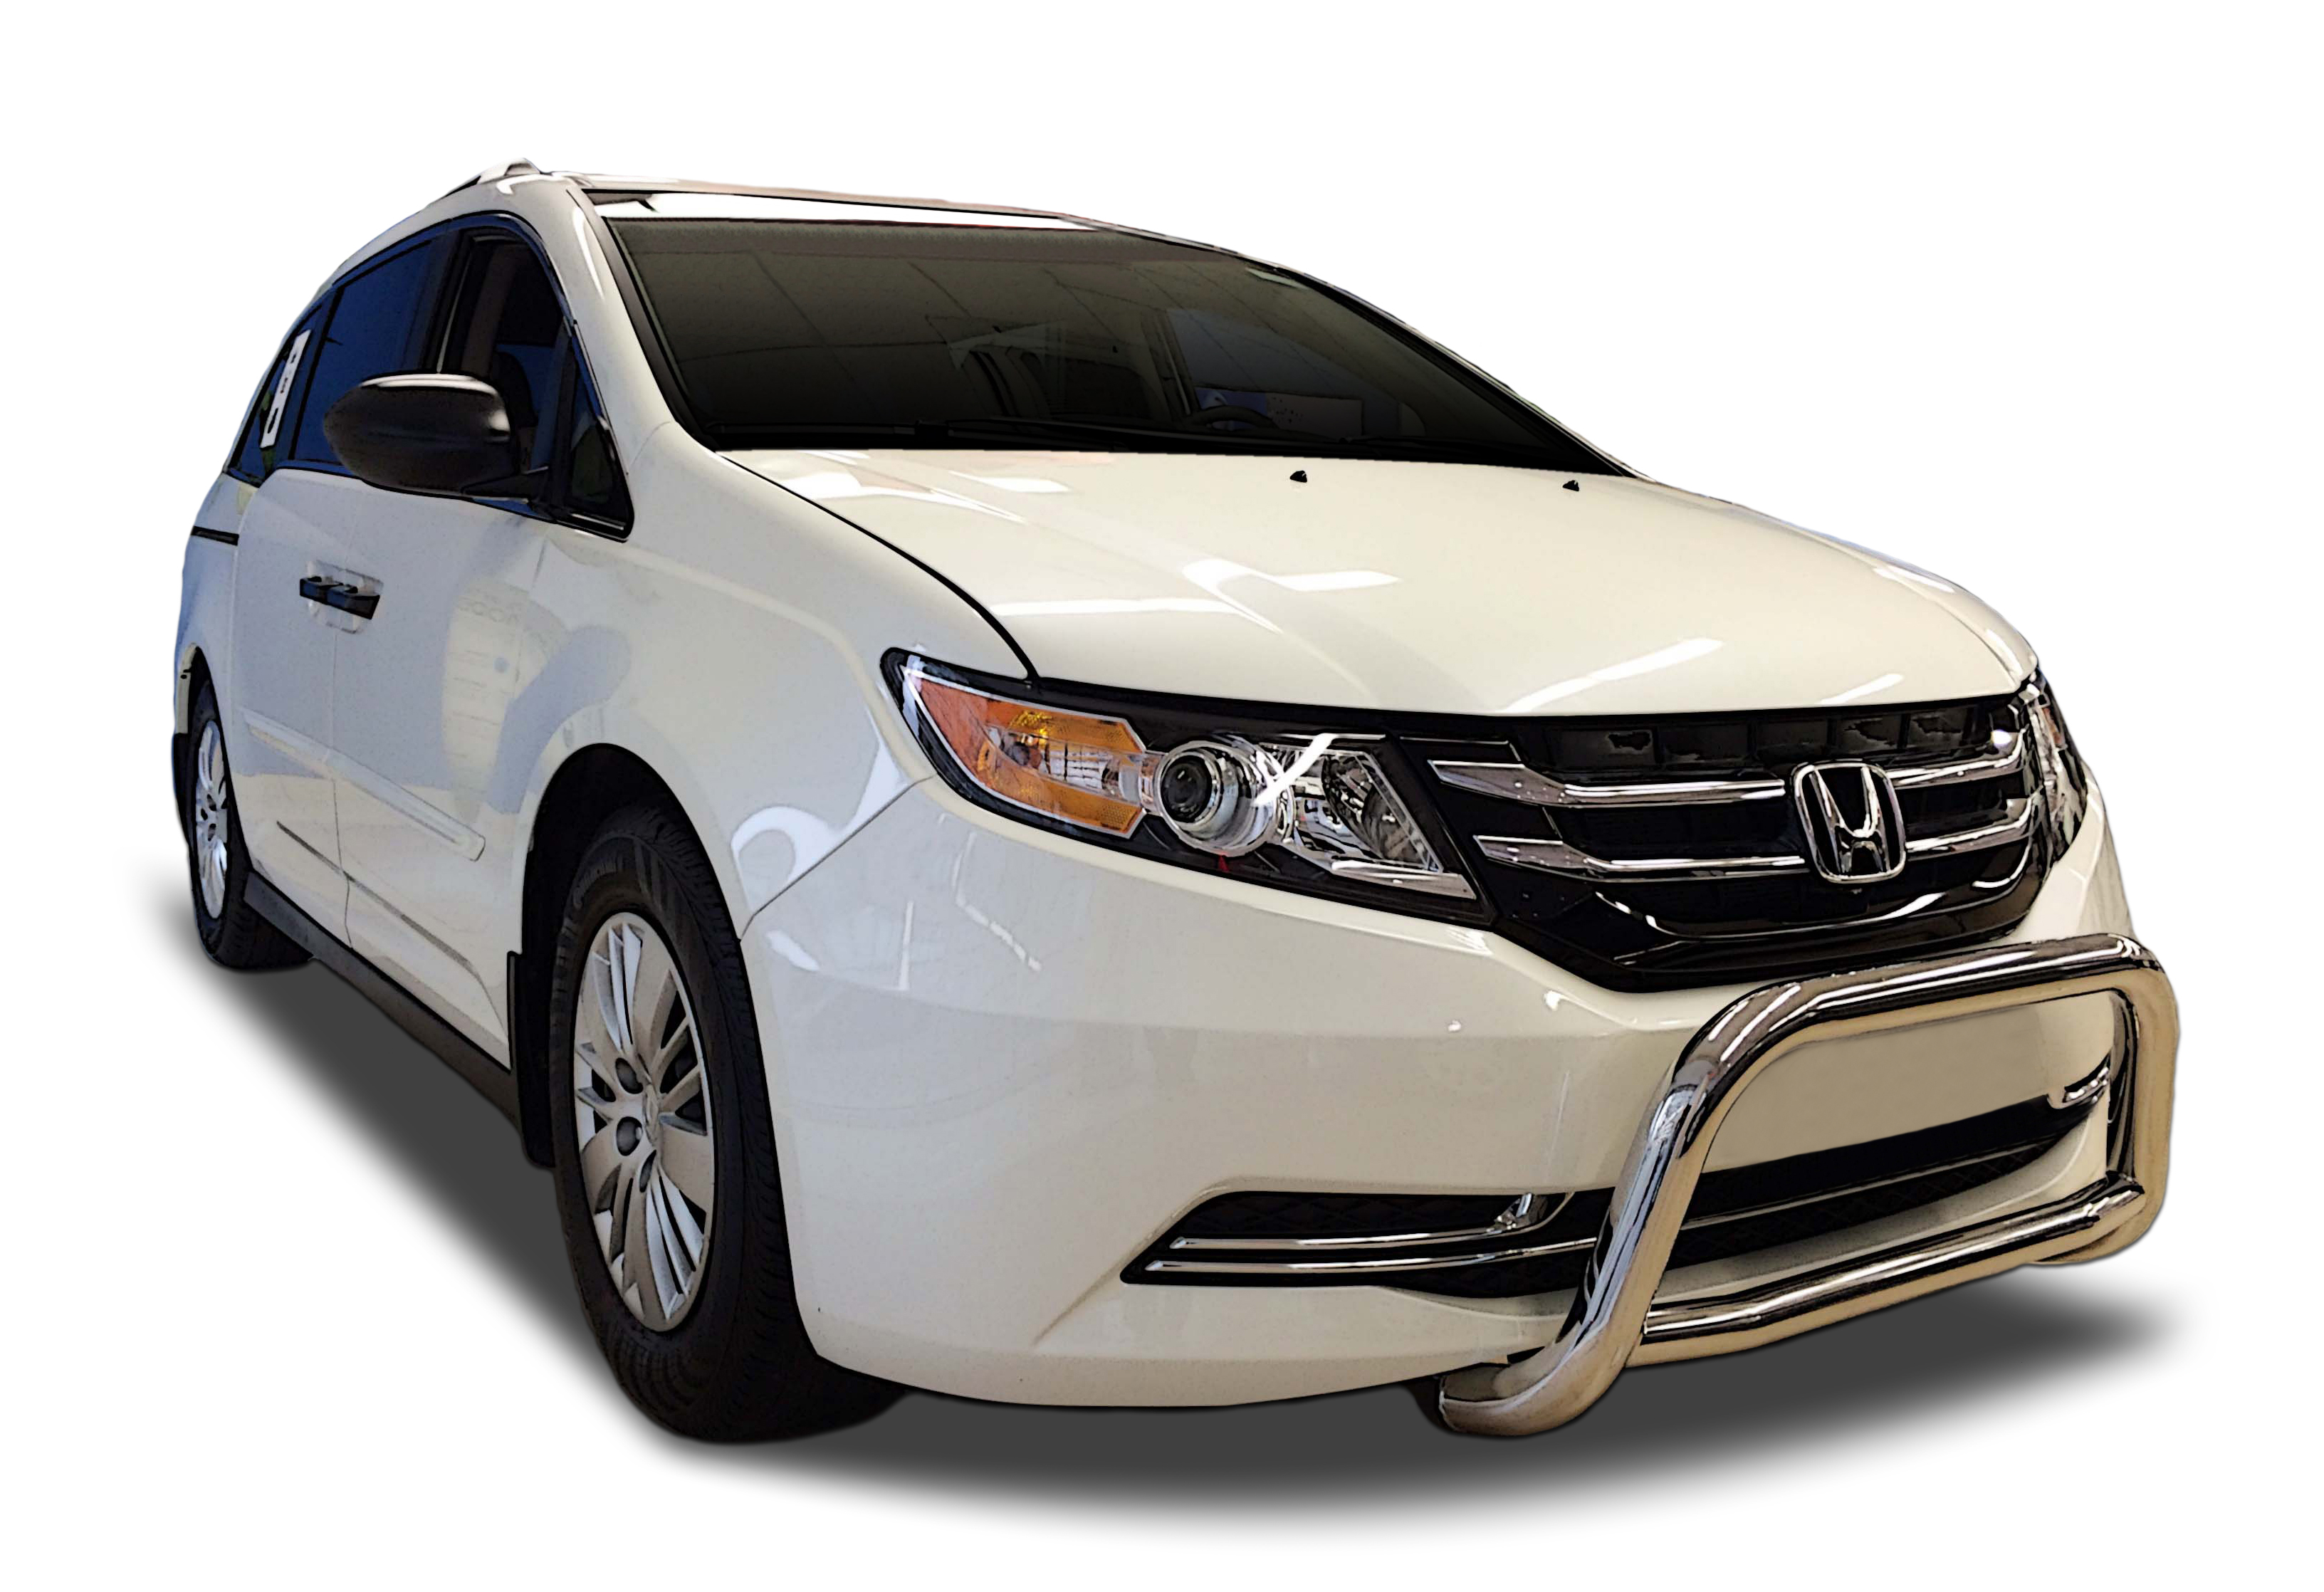 Honda Odyssey accessories big